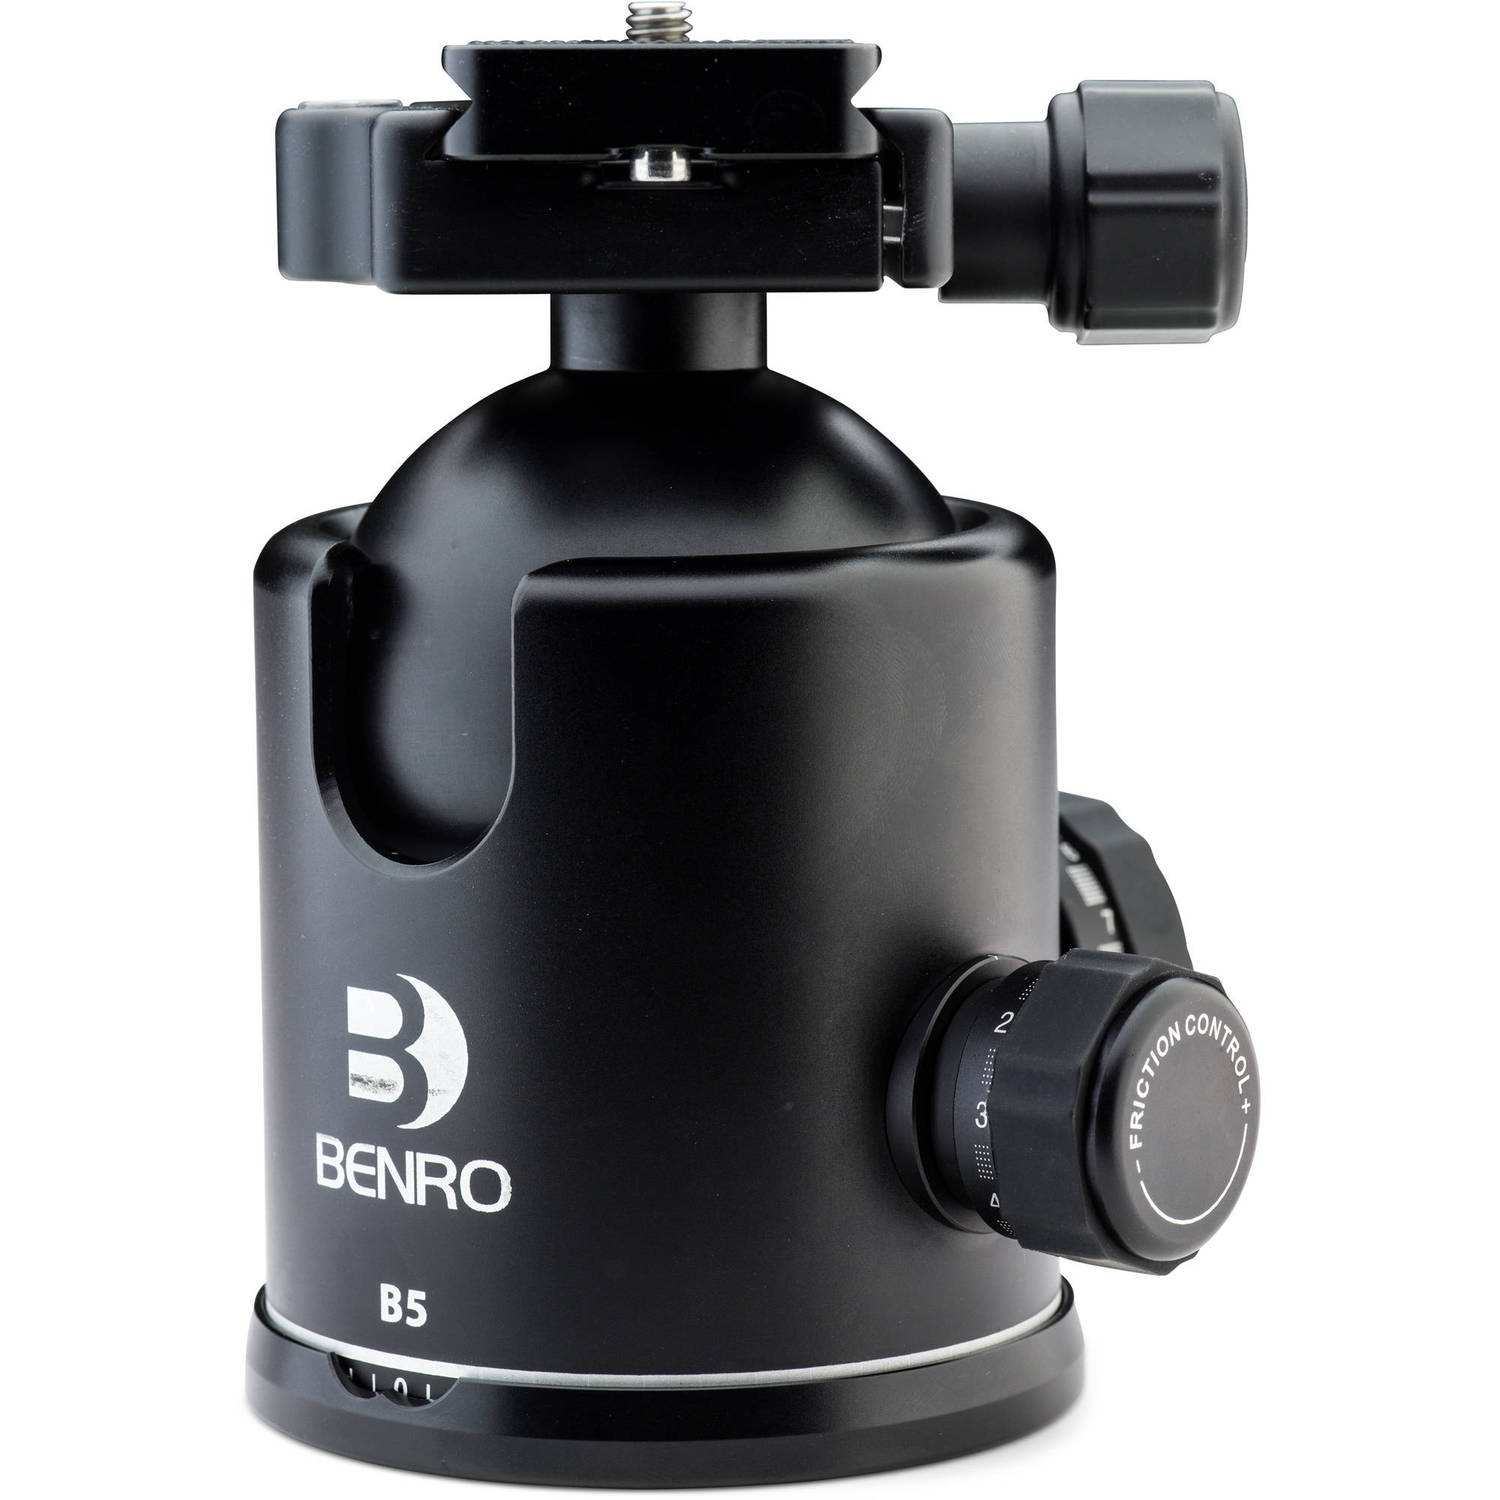 Benro B5 Triple Action Ball Head